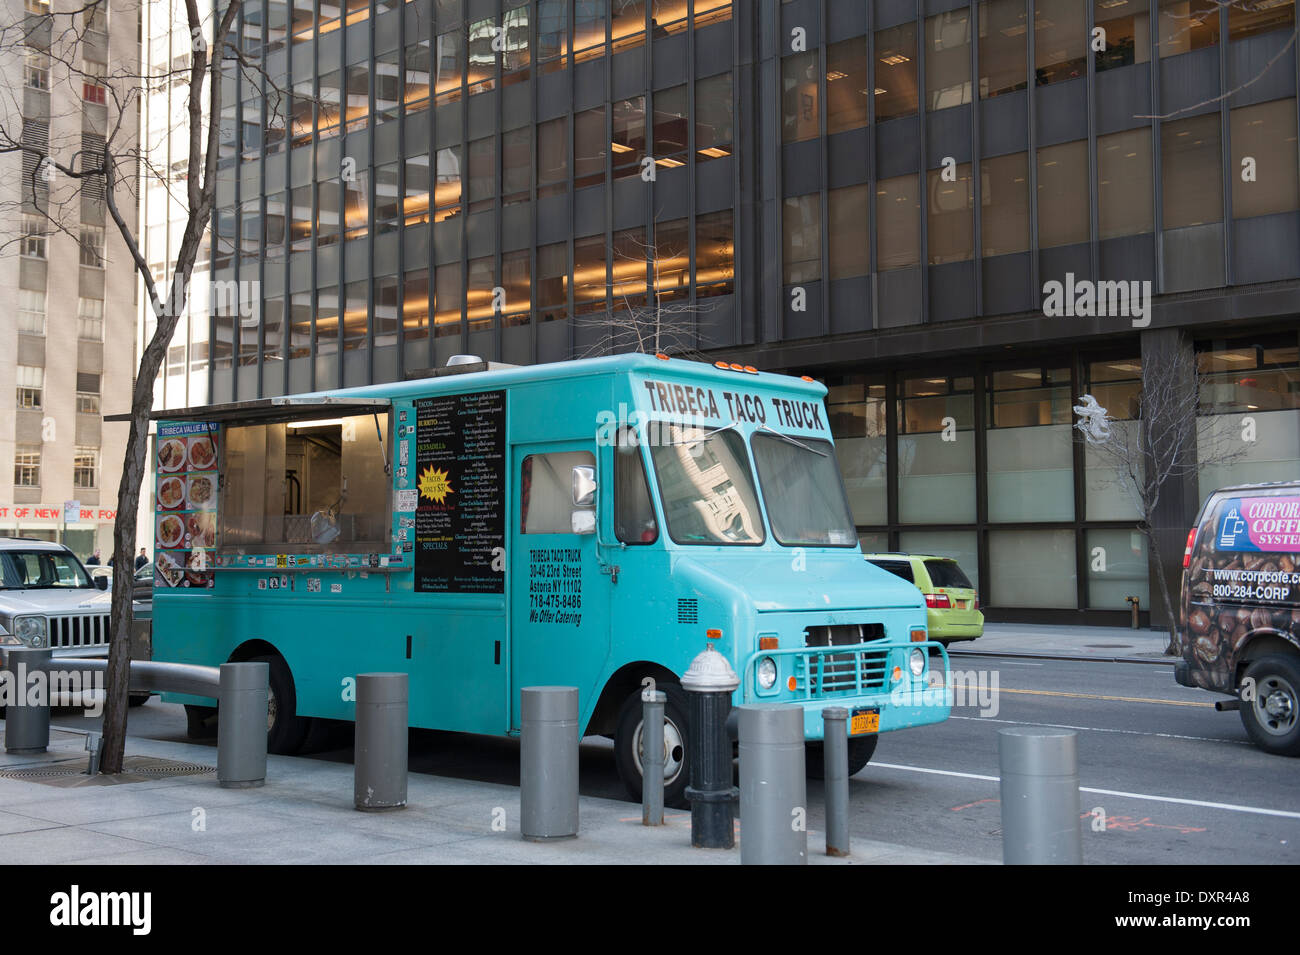 A food truck on Water Street in Lower Manhattan, New York City. - Stock Image